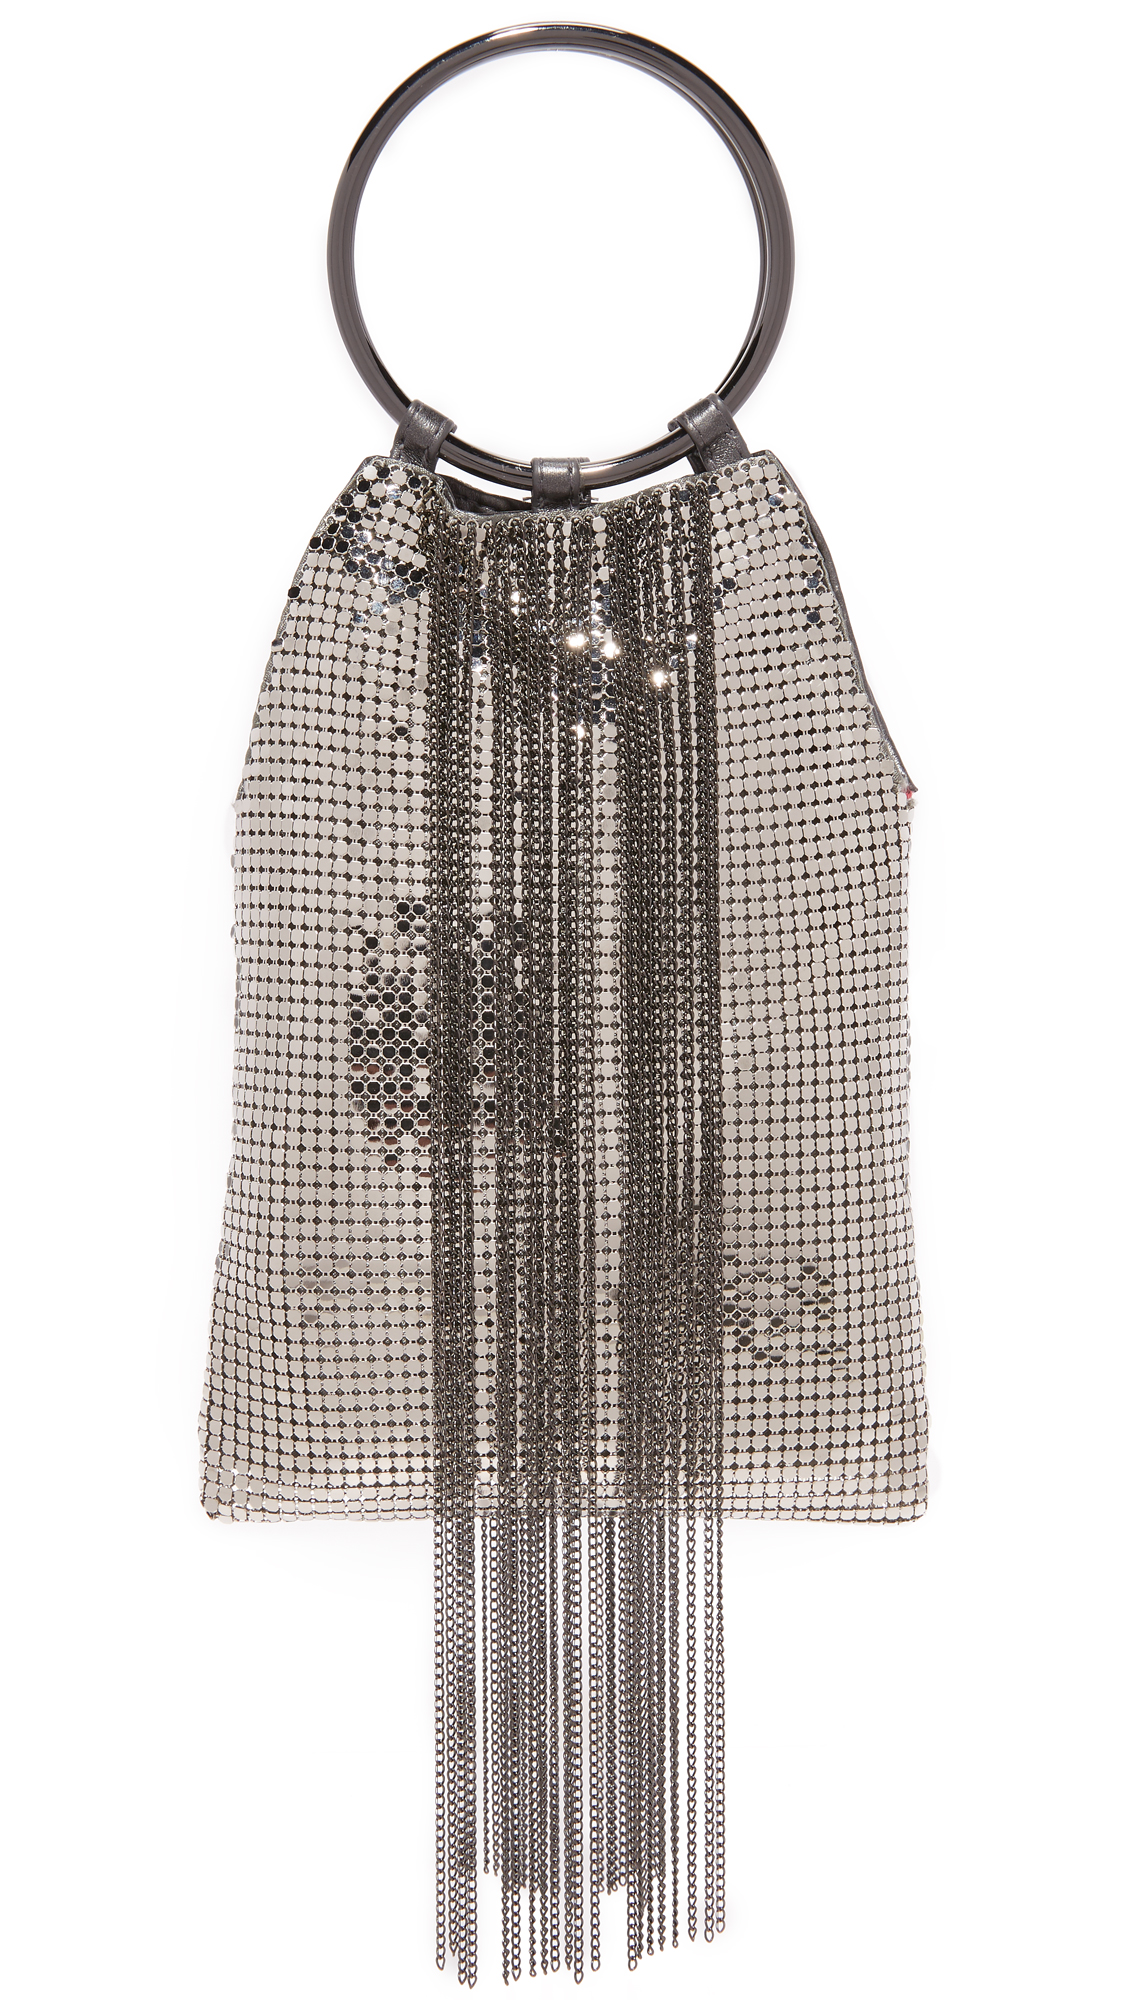 A slouchy Whiting & Davis pouch, rendered in metal mesh and accented with cascading fringe. Magnetic top and lined, 1 pocket interior. Metal handles. Fabric: Metal mesh. Weight: 7oz / 0.2kg. Imported, China. Measurements Height: 7.75in / 20cm Length: 5.5in / 14